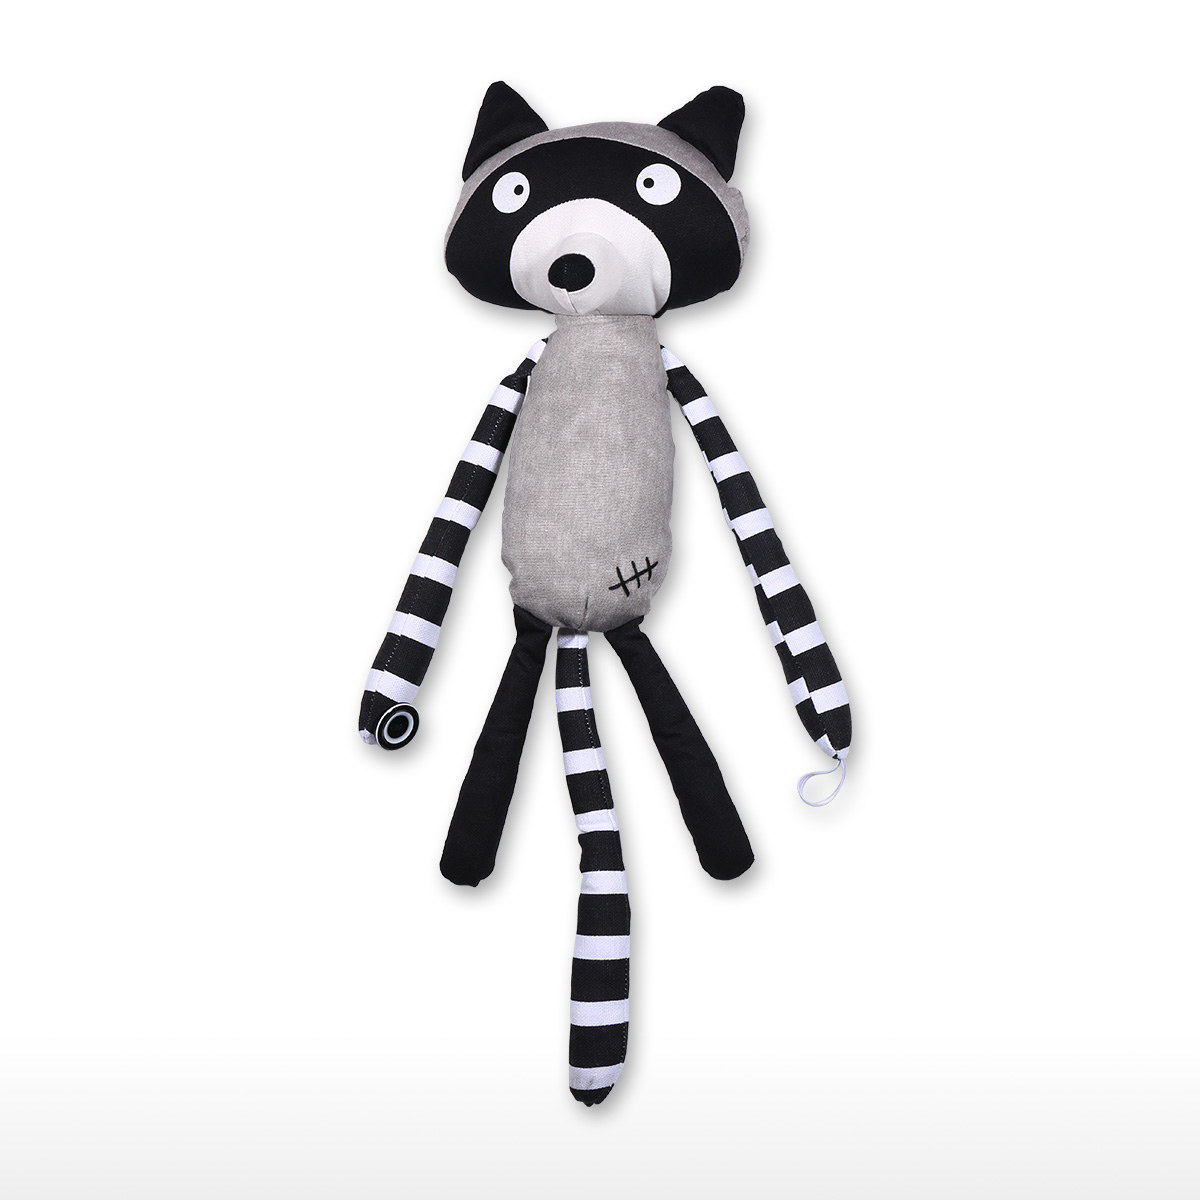 Baby Nursery Curtain Tie Backs Best And Cheap Grey And Black Raccoon Curtain Tieback Lovely Curtain Holdback Kid Child Infant Nursery Bedroom Living Room Tieback Tooarts